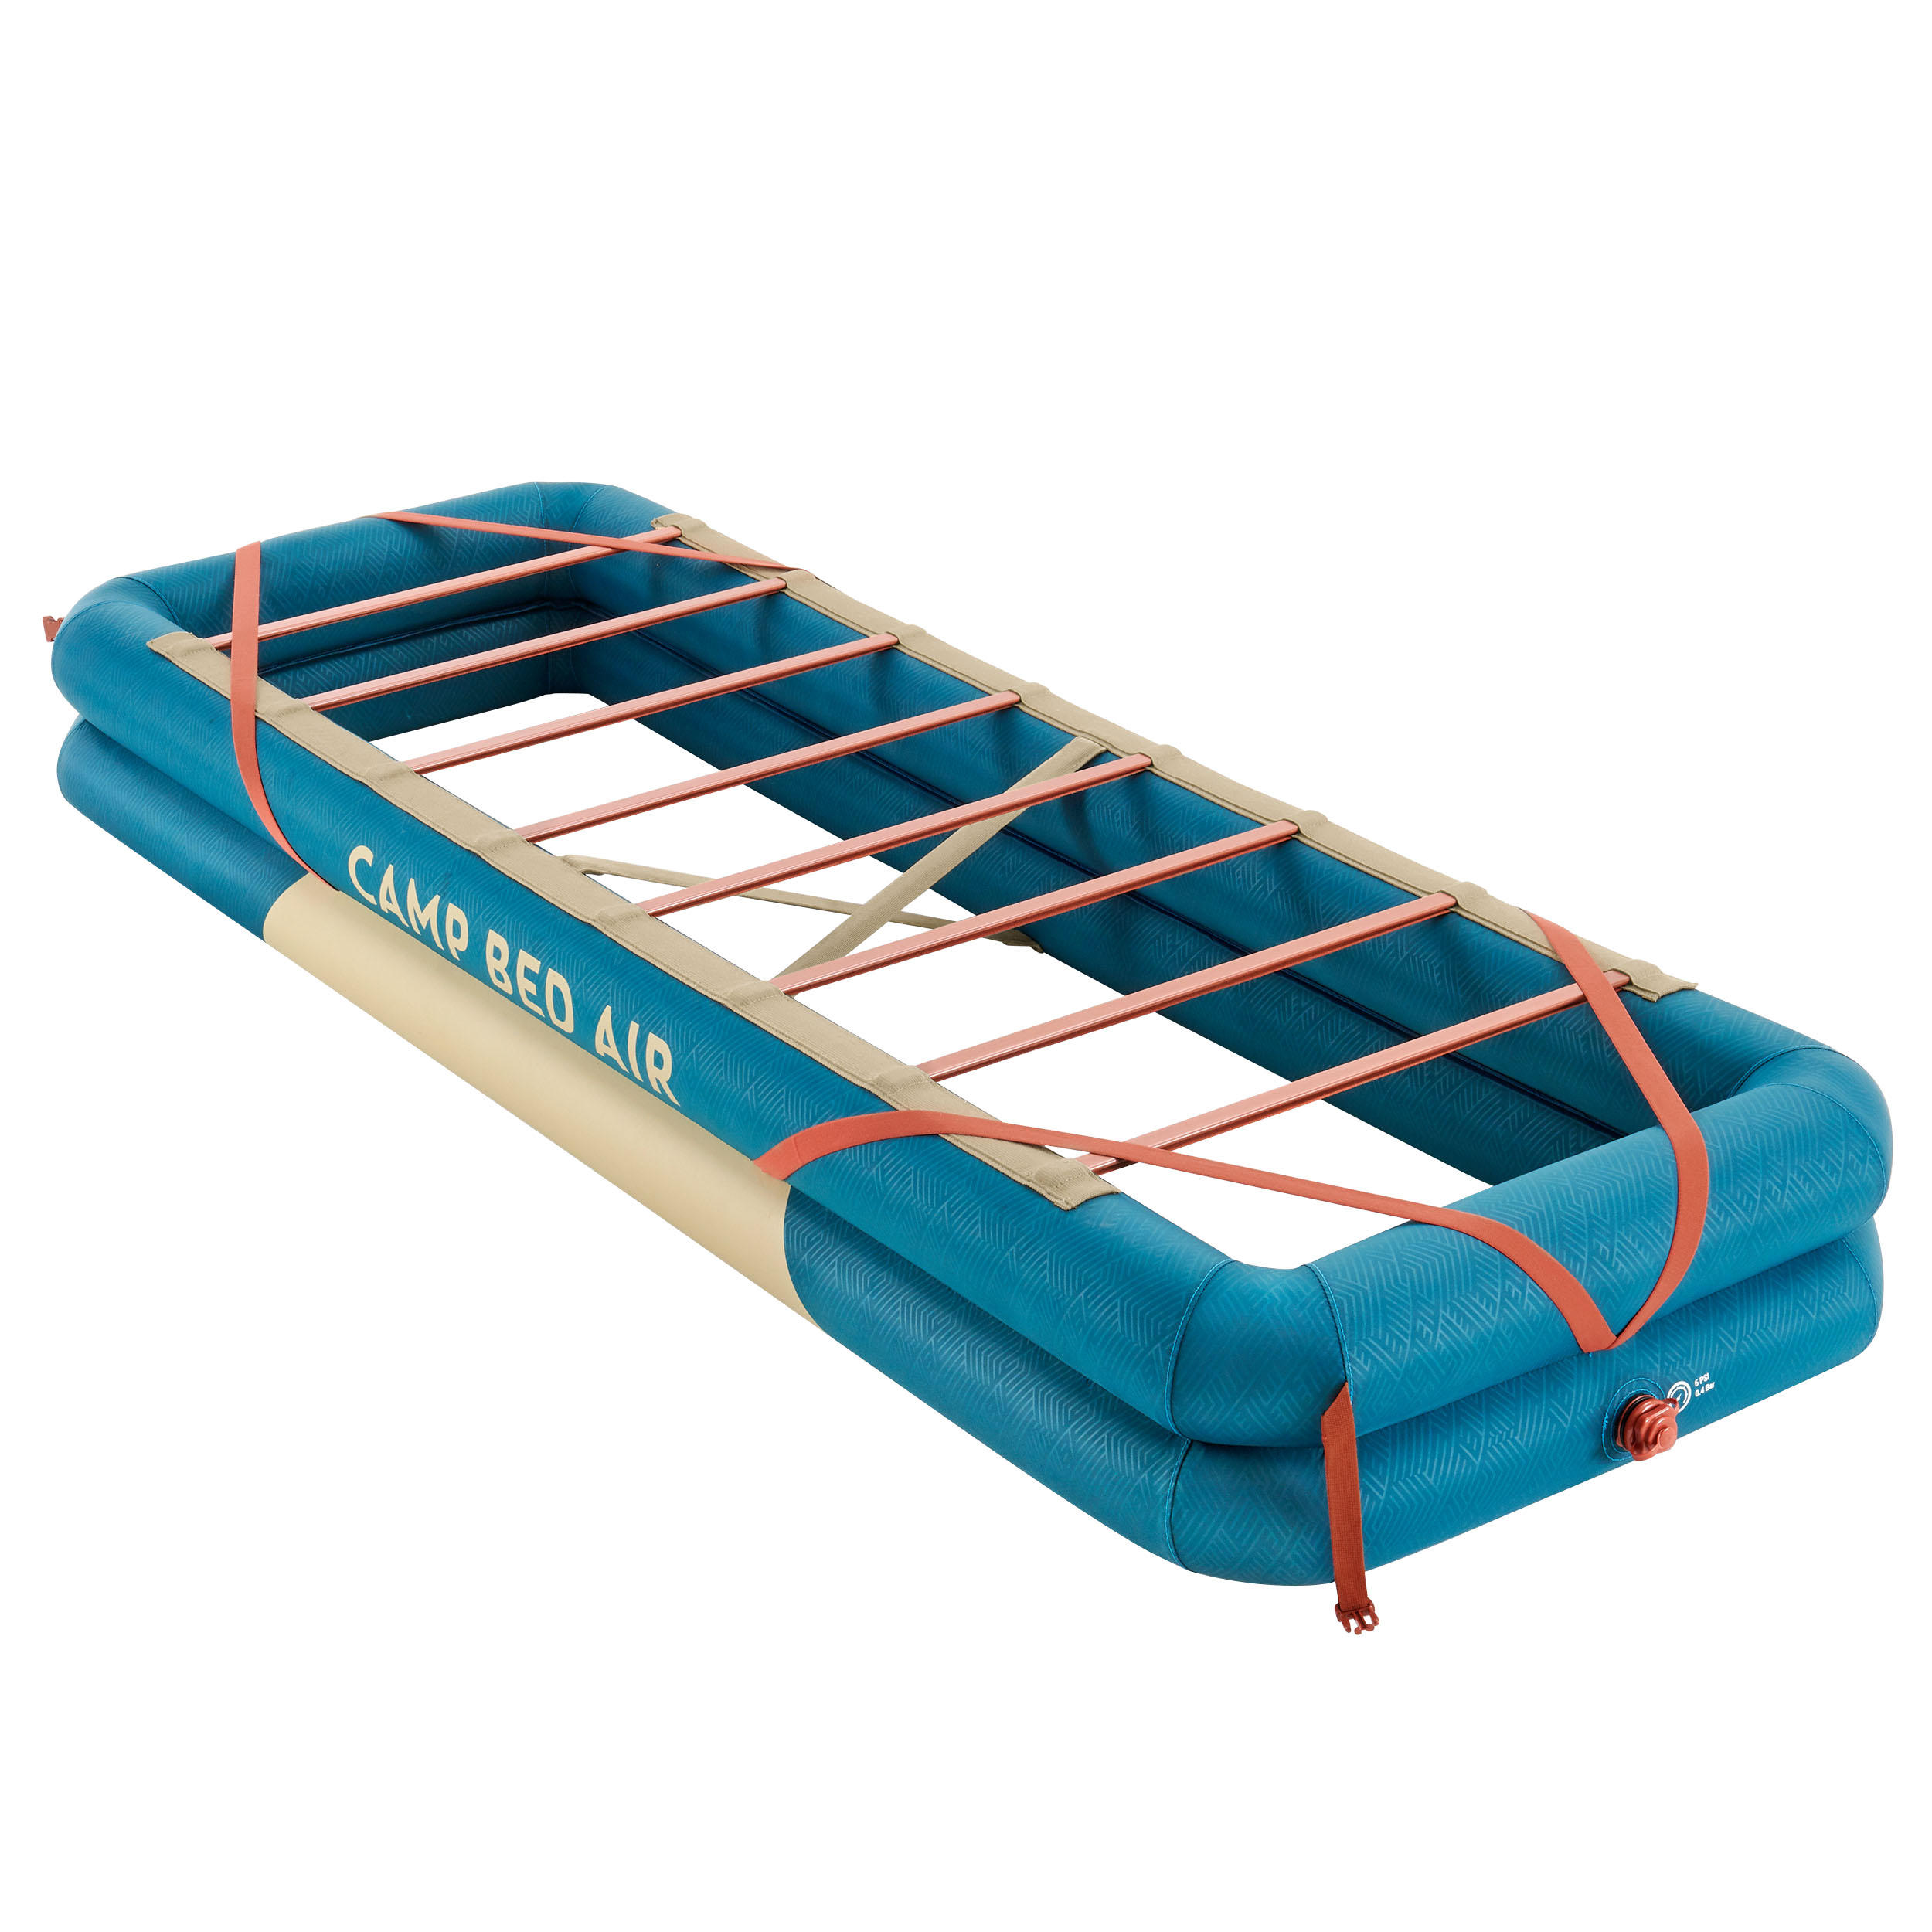 Campingbett Bed Air Aufblasbar 70 Cm X 200 Cm Fur 1 Person Blau Koppelbar Quechua Decathlon